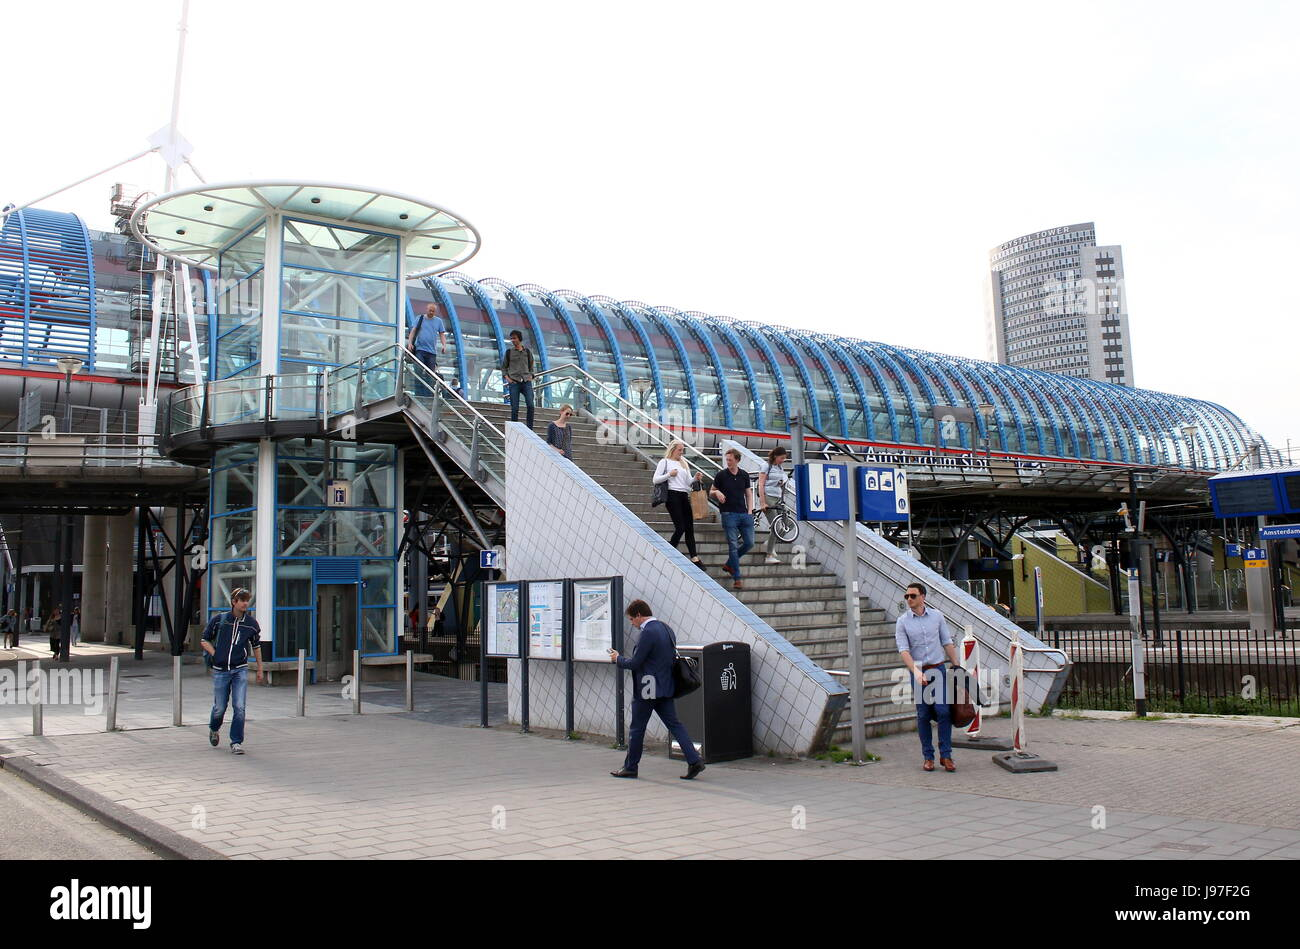 Large Sloterdijk Train Station, Amsterdam, Netherlands. - Stock Image